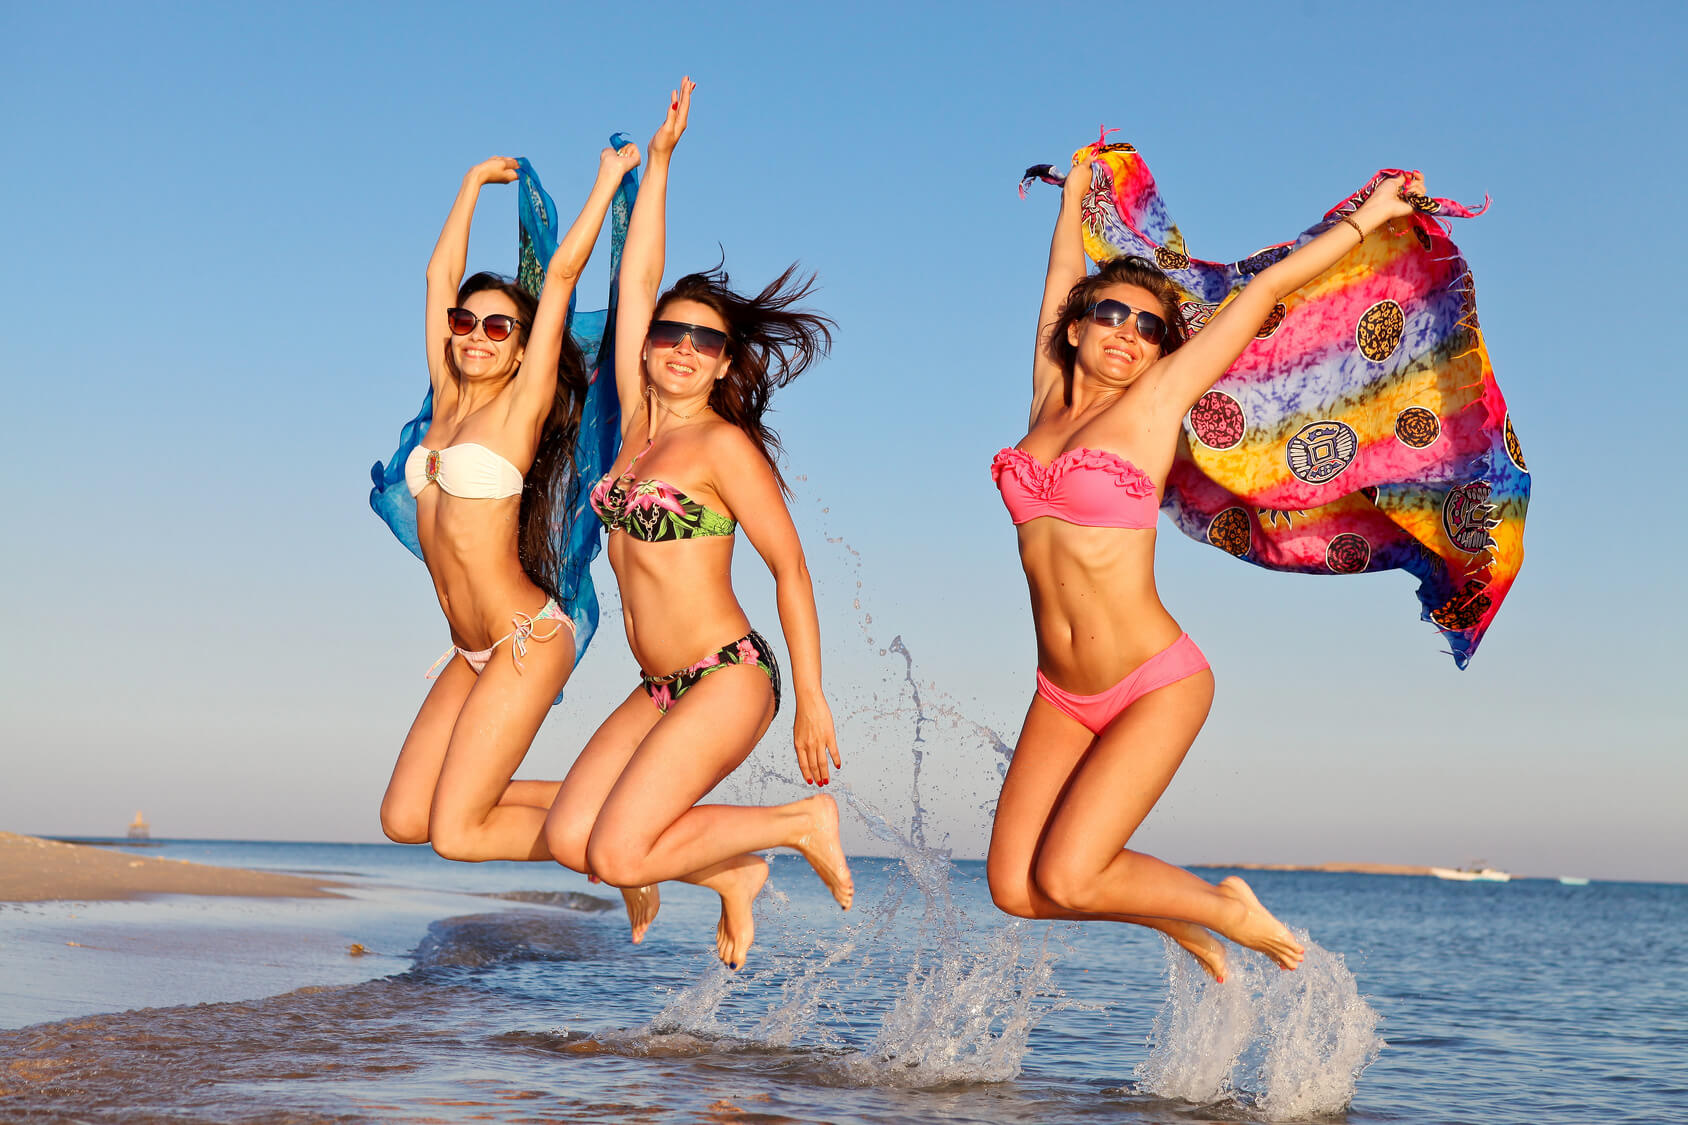 Group-of-girls-jumping-on-the-beach